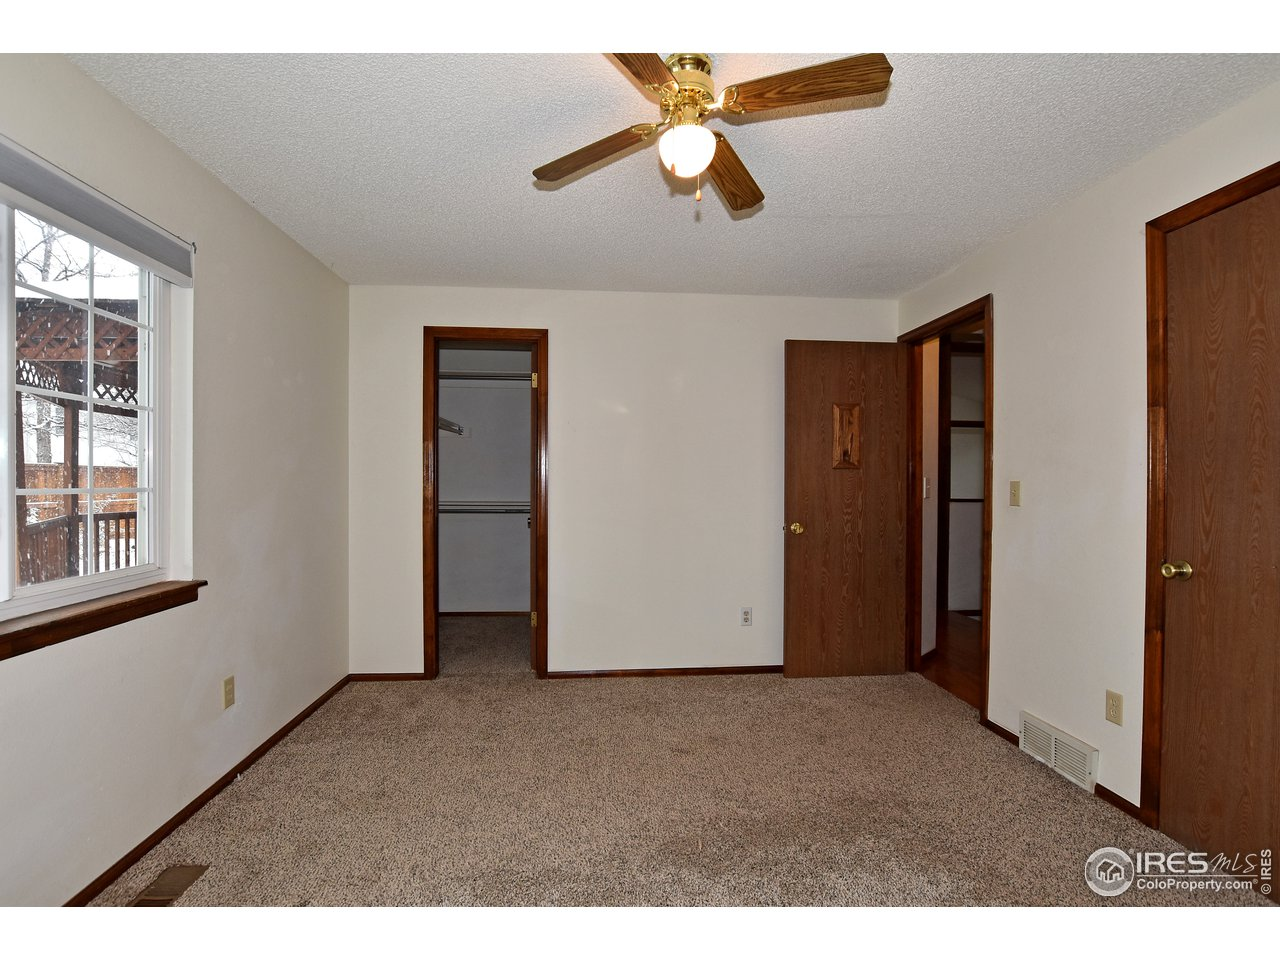 Bedroom 2, with double closets!